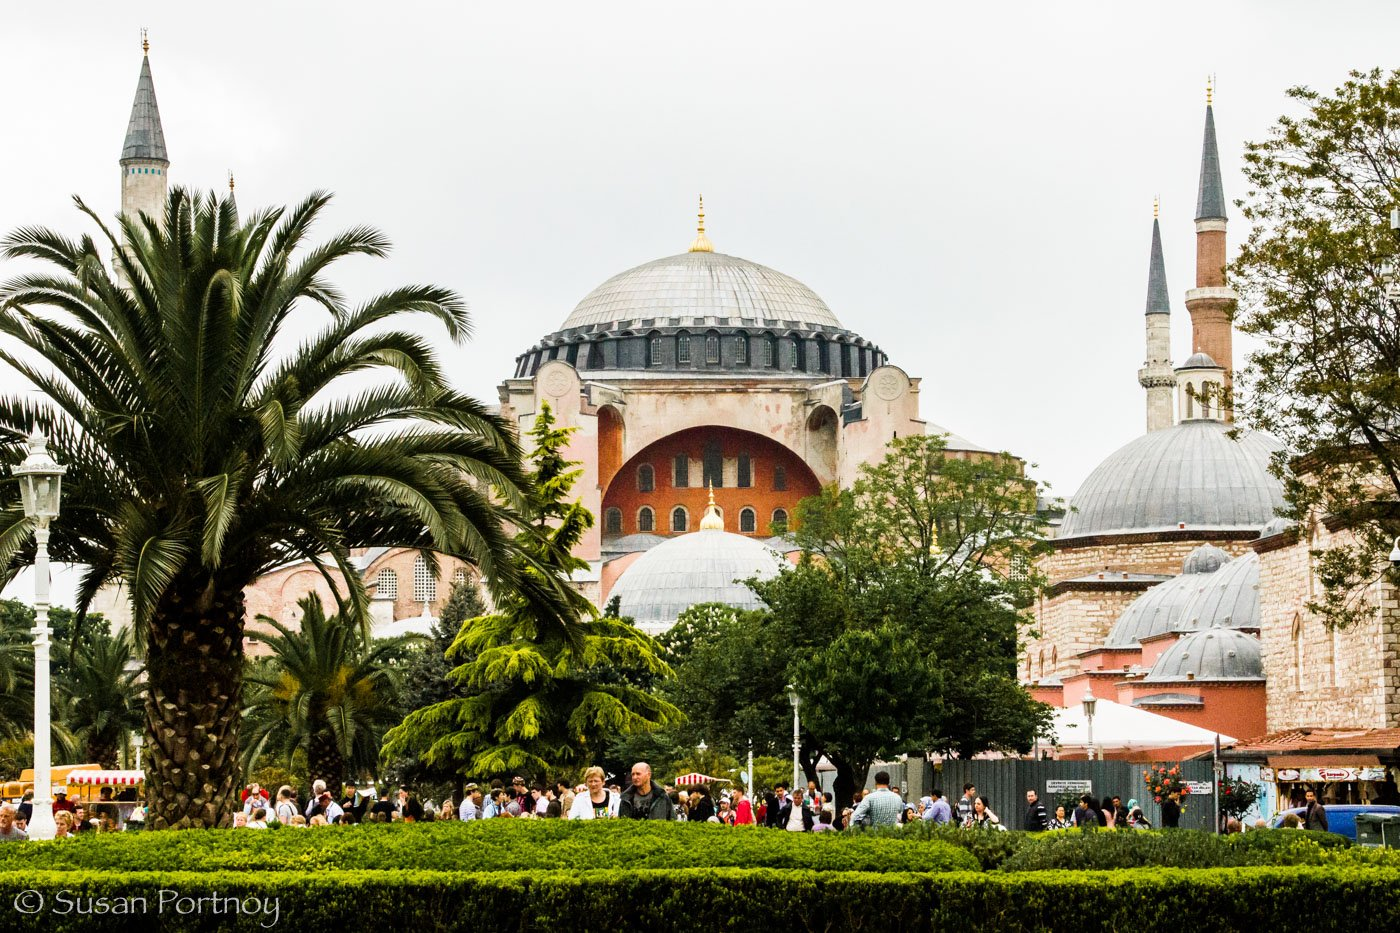 Rüstem Pasha Mosque – it's colors and designs were some of my favorite